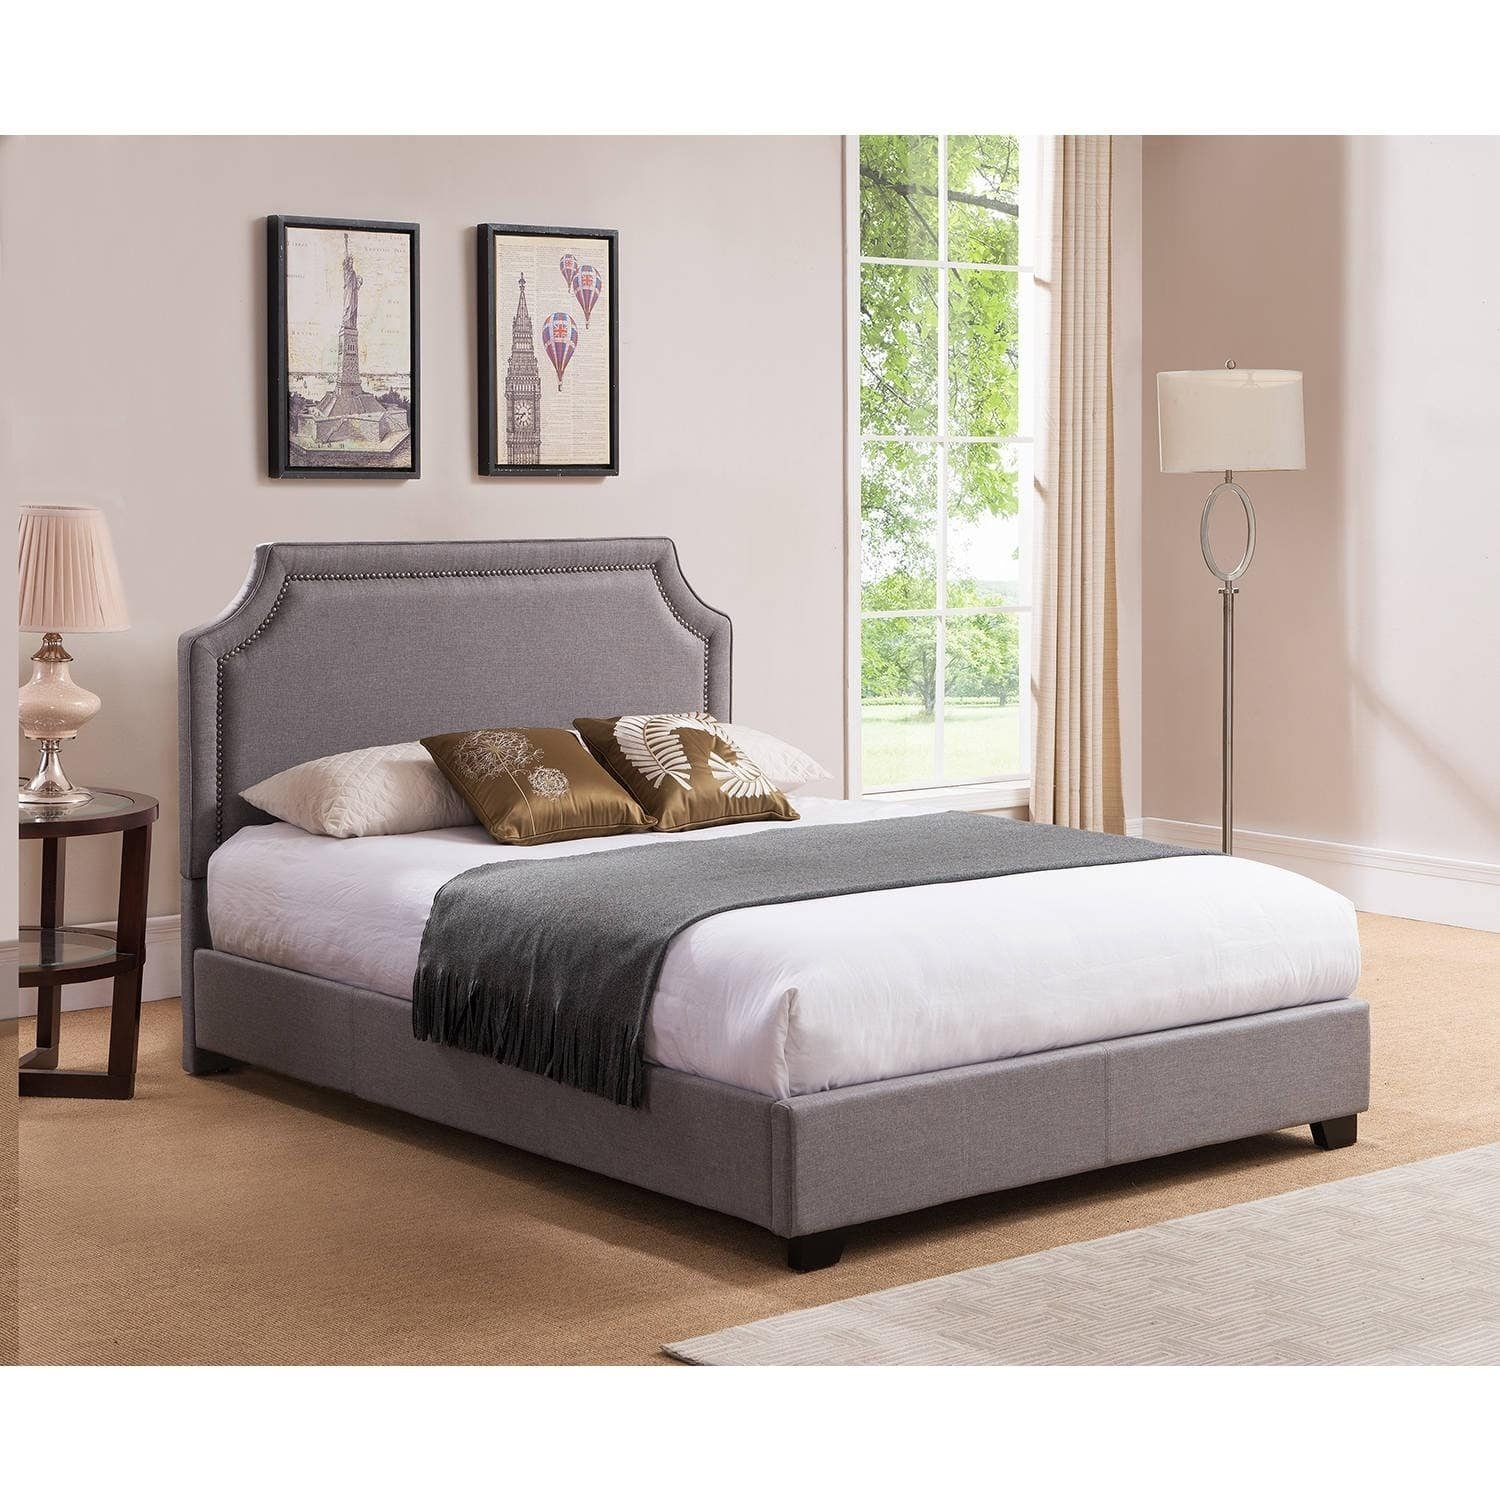 Amazon.com: Modern Upholstered Bedroom Platform Bed, Wooden Frame and Grey Linen Fabric Construction, Queen Size + Expert Guide: Kitchen & Dining